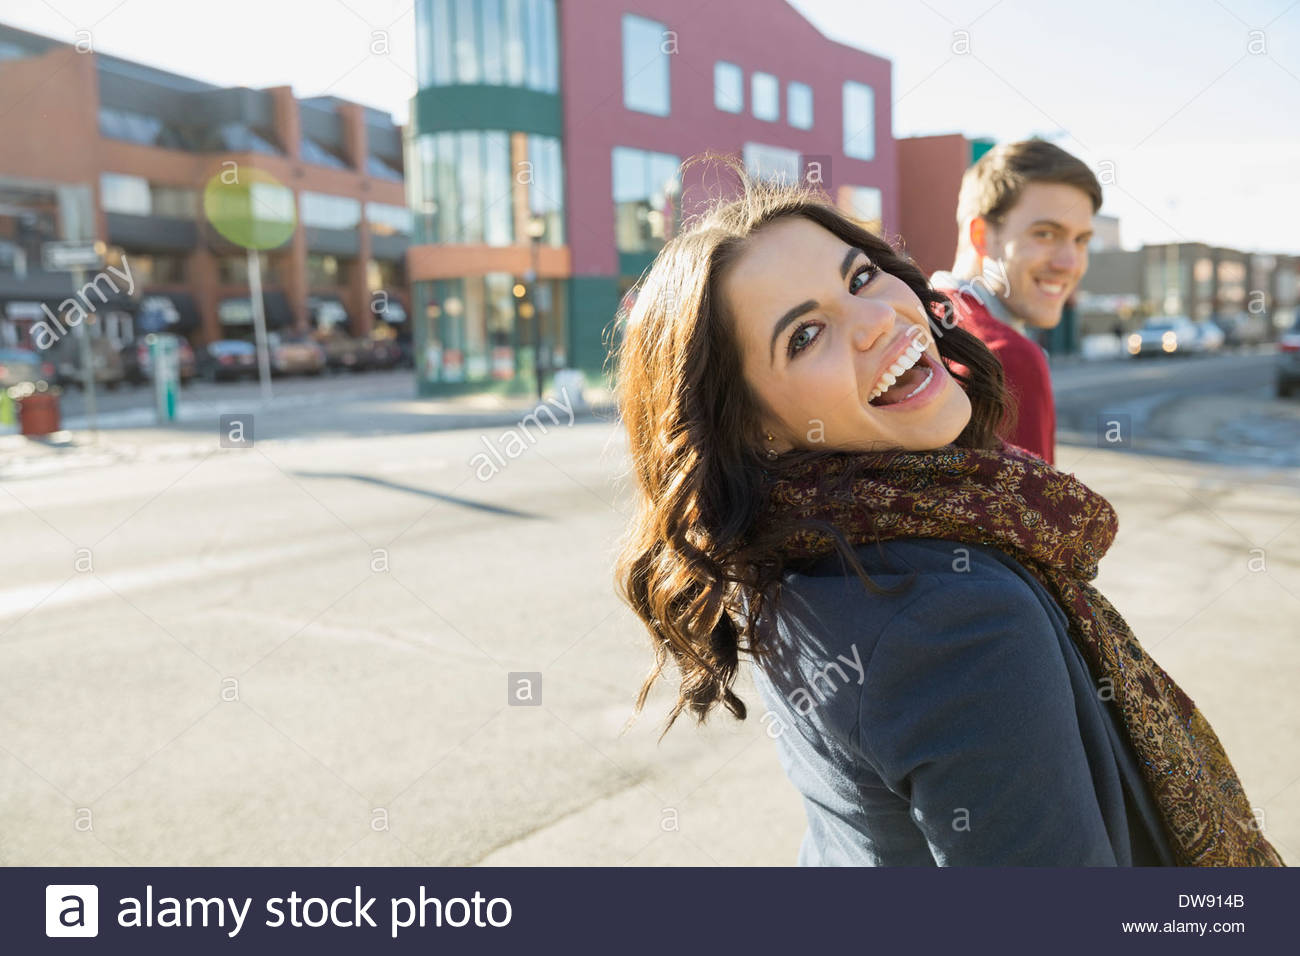 Cheerful woman looking back on city street Photo Stock